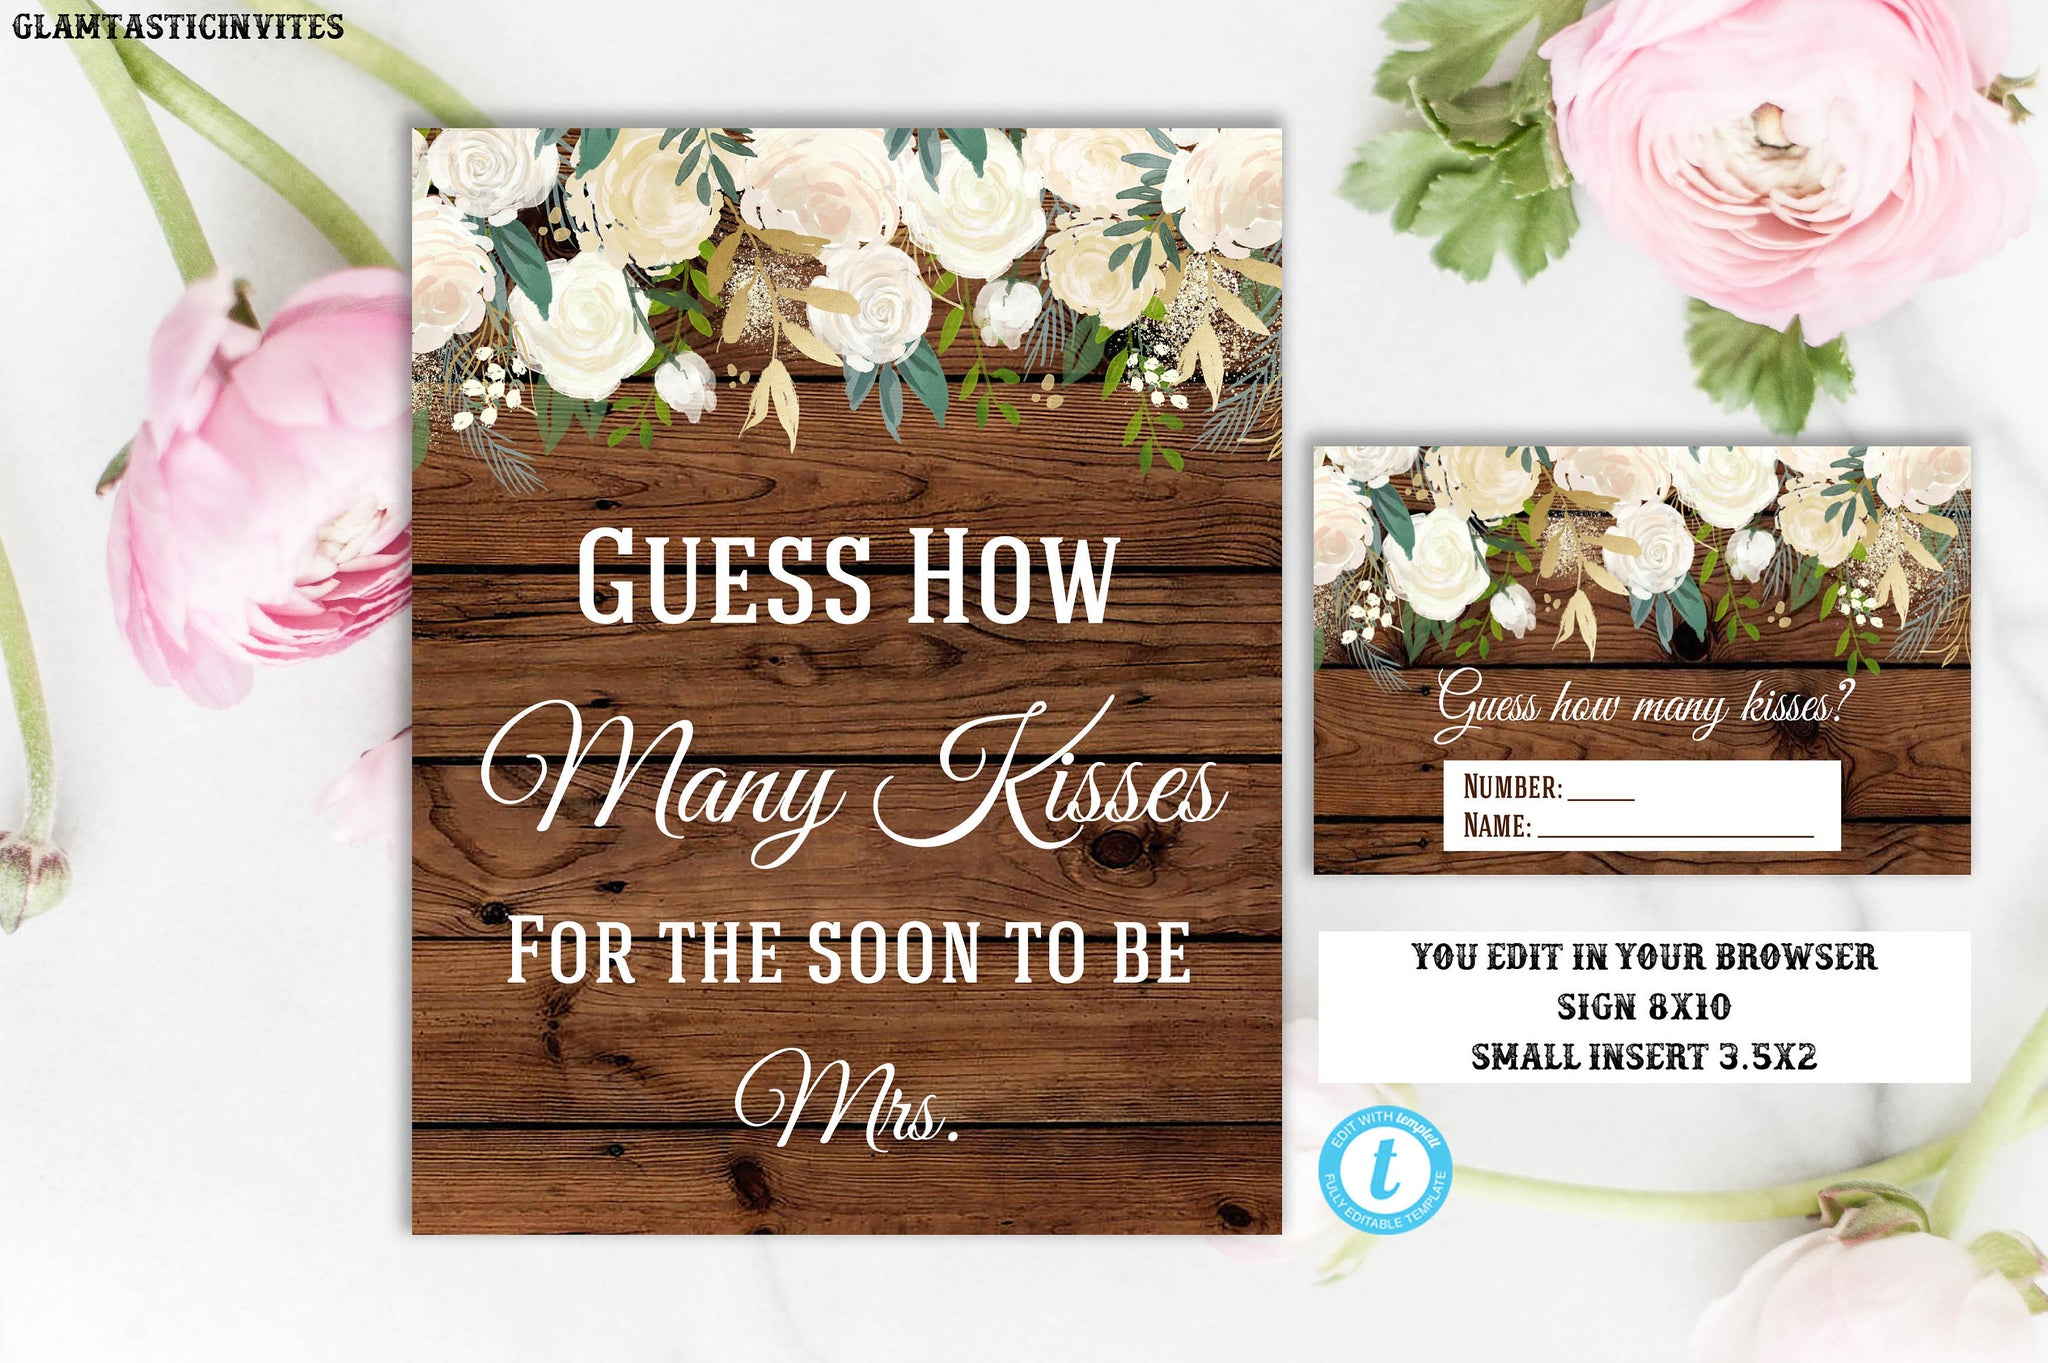 Rustic Guess How Many Kisses Sign Game Template Instant Download Print Glamtasticinvites